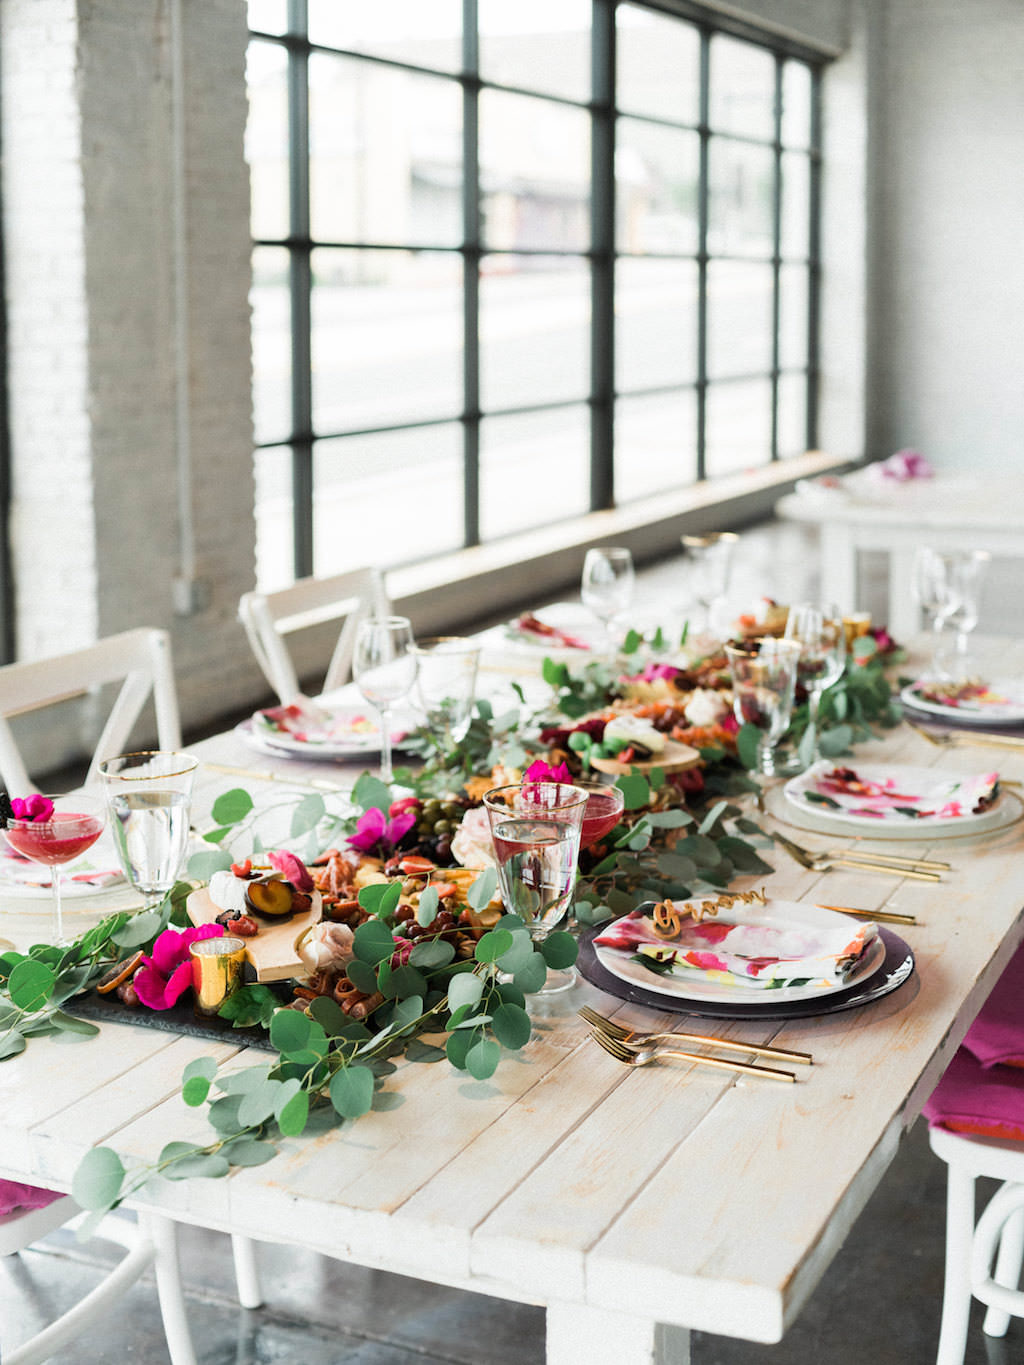 Modern Fuchsia Wedding Reception Table with Charcuterie Board with Greenery, Wooden Table, White Cross Back Chairs, Pink Linens   Lakeland Florida Wedding Caterer Tastes of Tampa Bay   Furniture and Dish Rentals A Chair Affair   Venue Haus 820